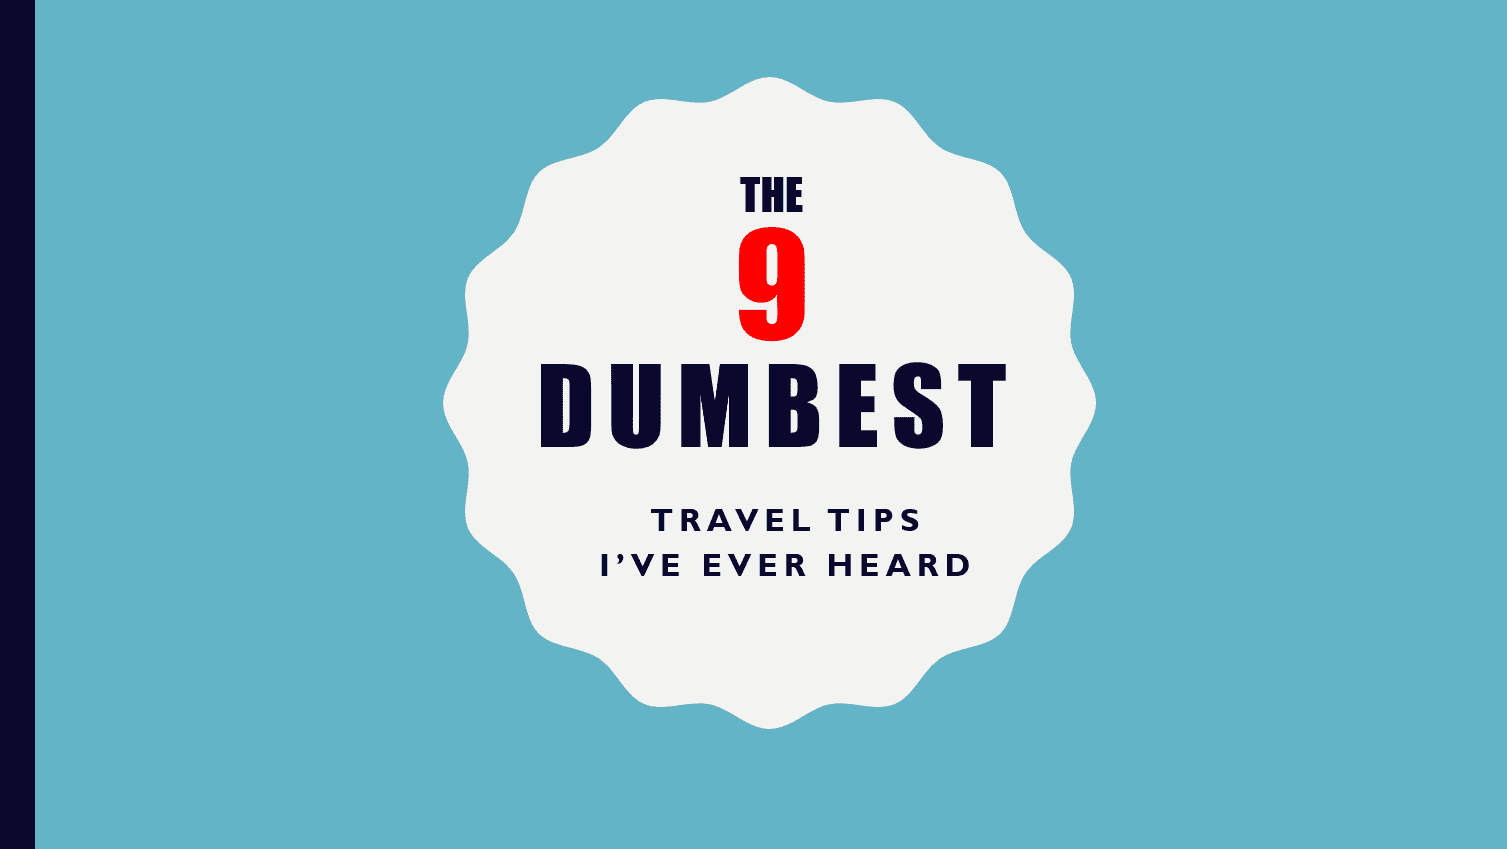 The 9 Dumbest Travel Tips I've ever heard